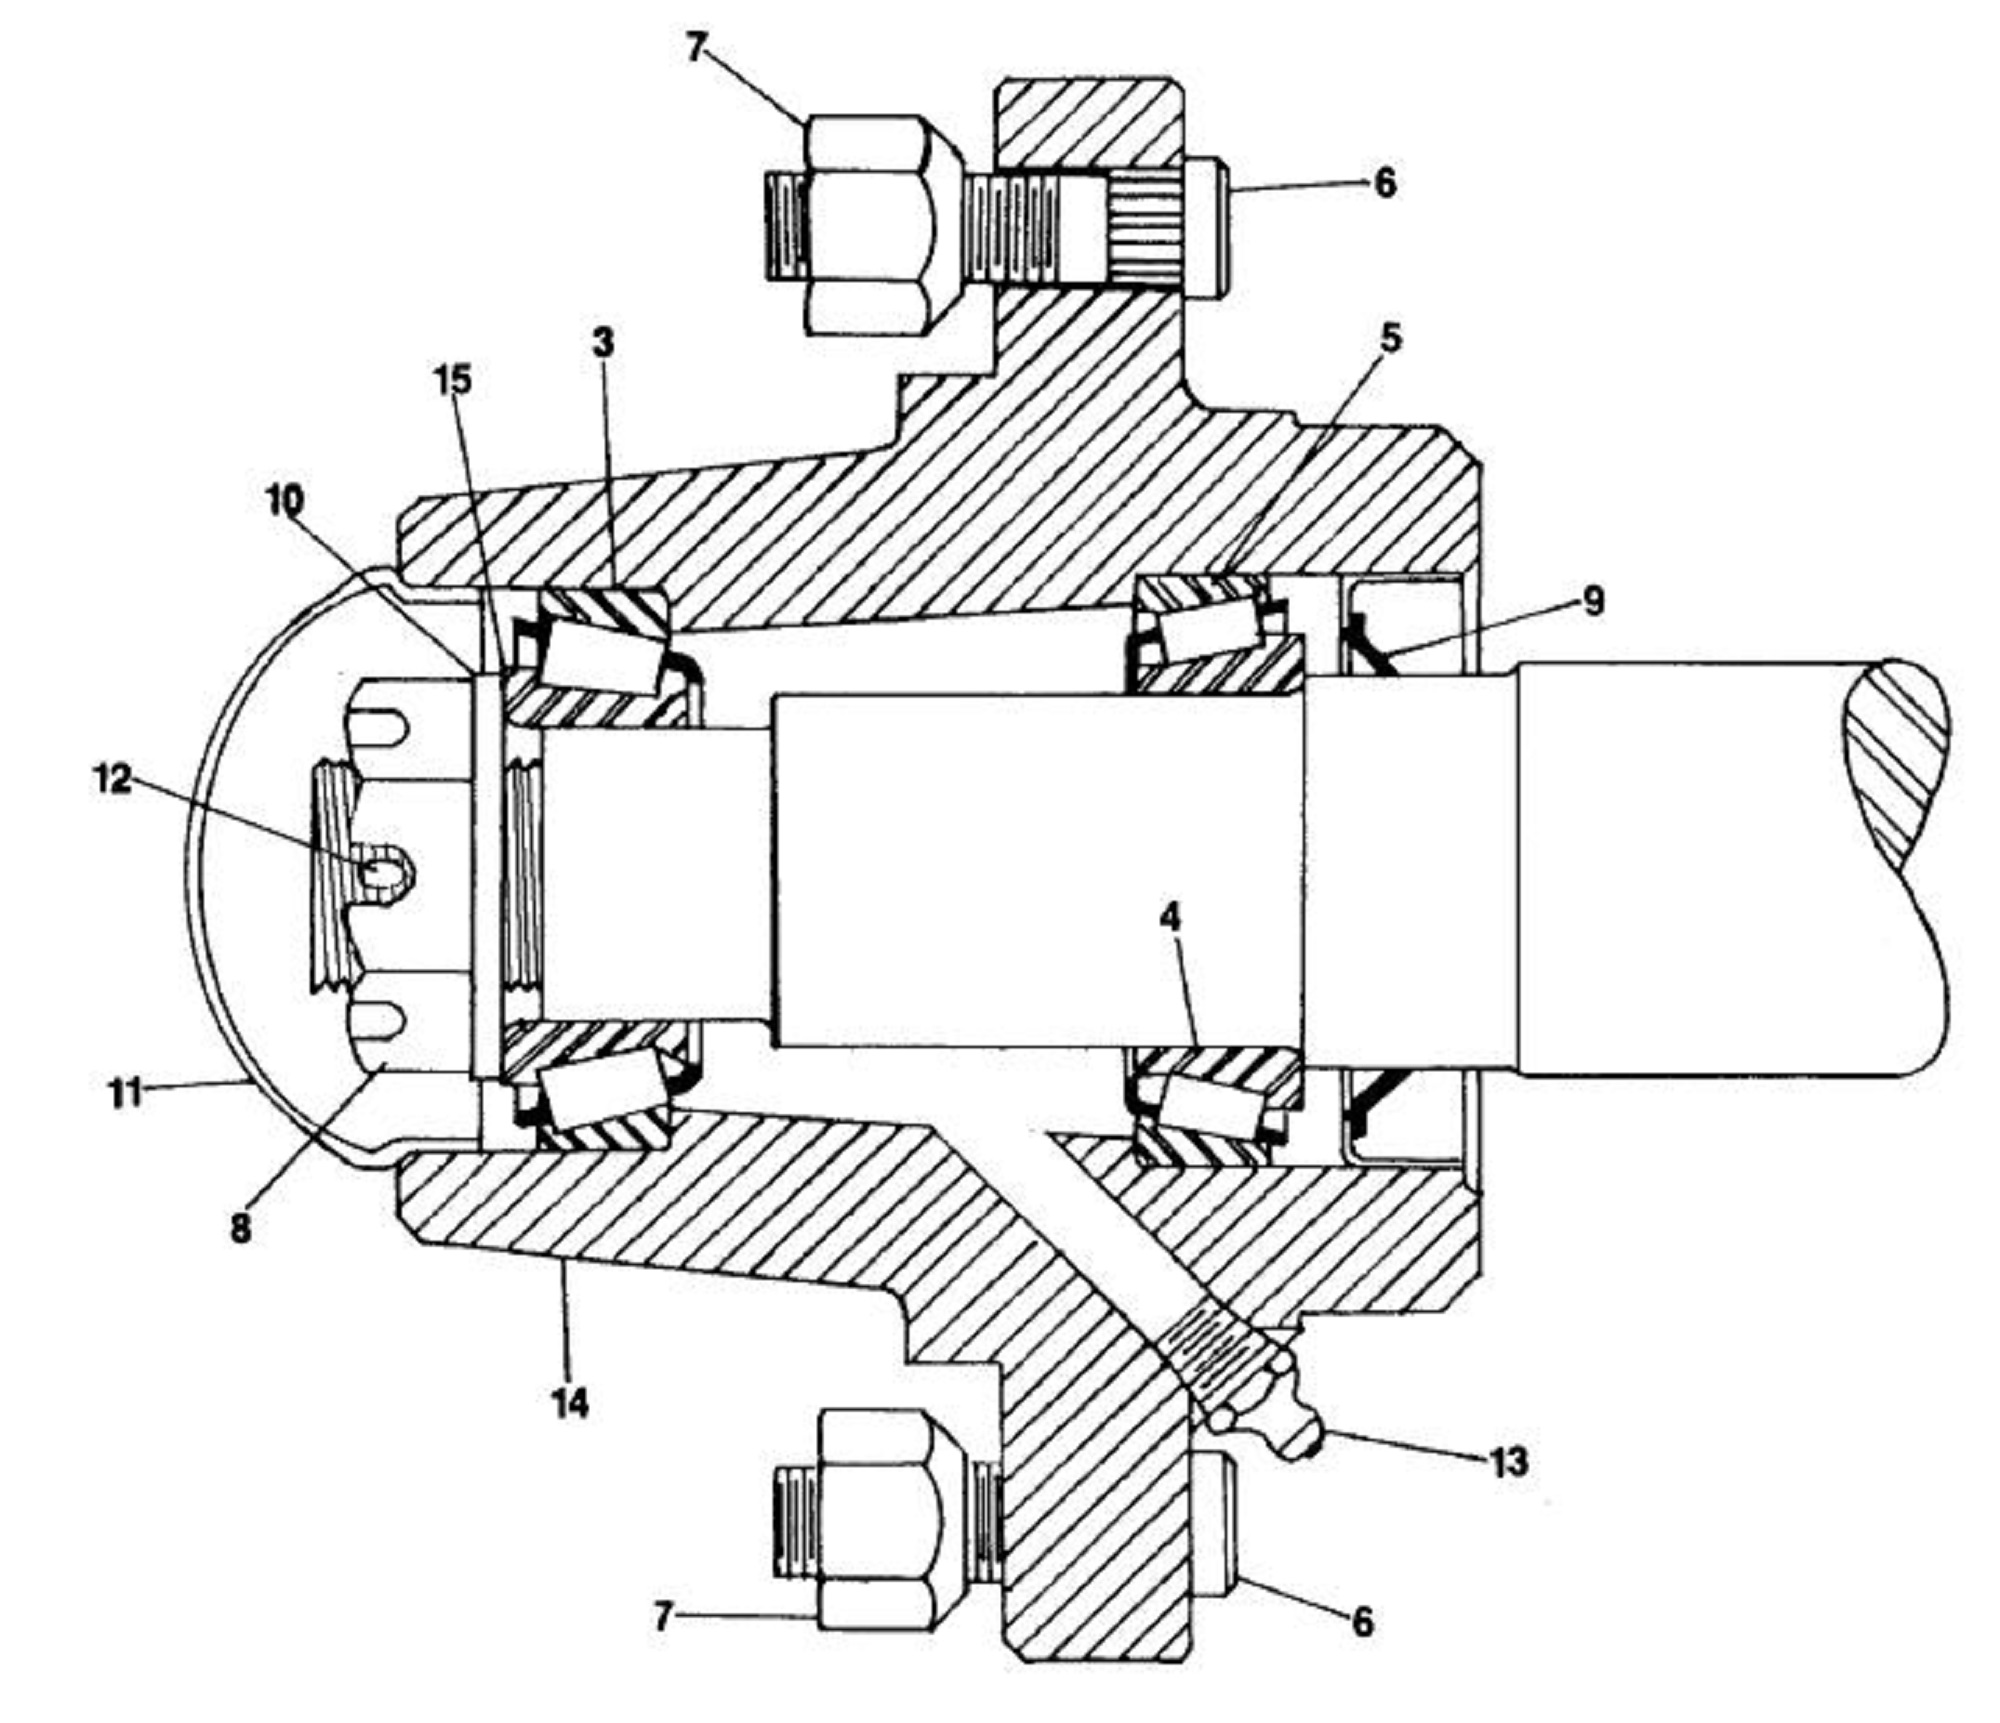 Servis Rhino Gr84 Rotary Mower Sn 26327 Current Hub Assembly Diagram Image Of Hover Over For Expanded View